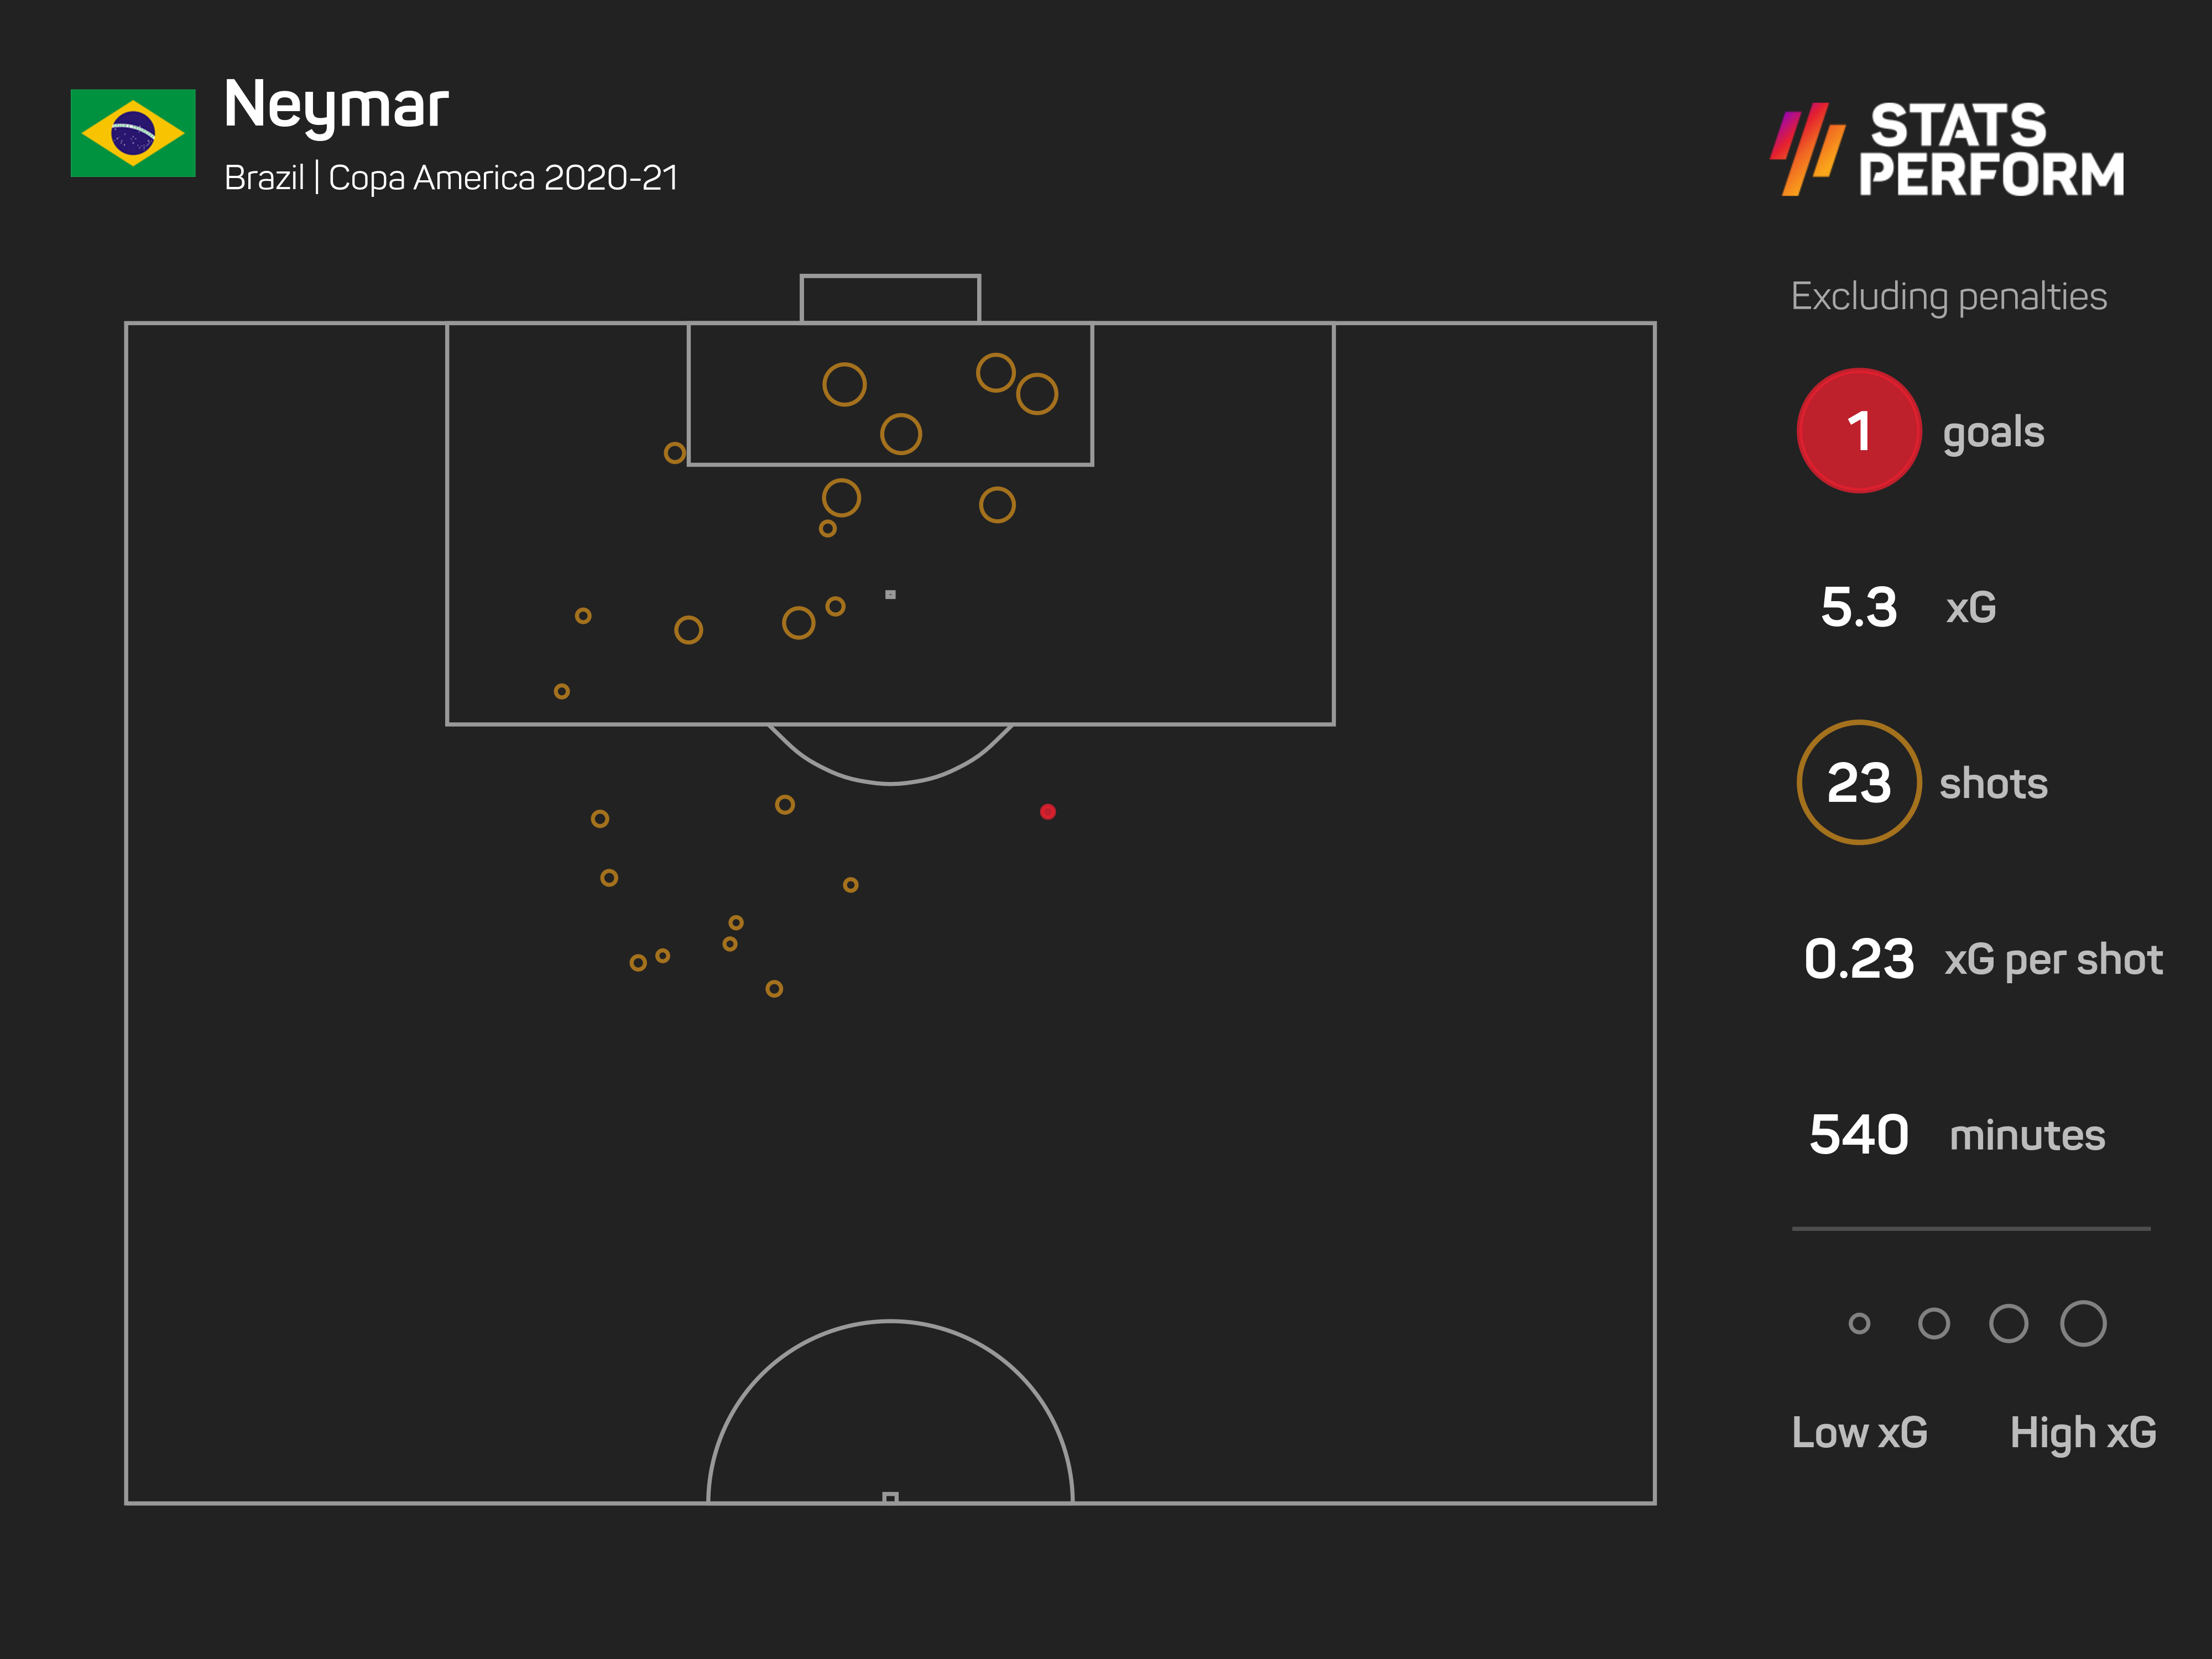 Neymar was wasteful in front of goal but still a spark for Brazil in attack